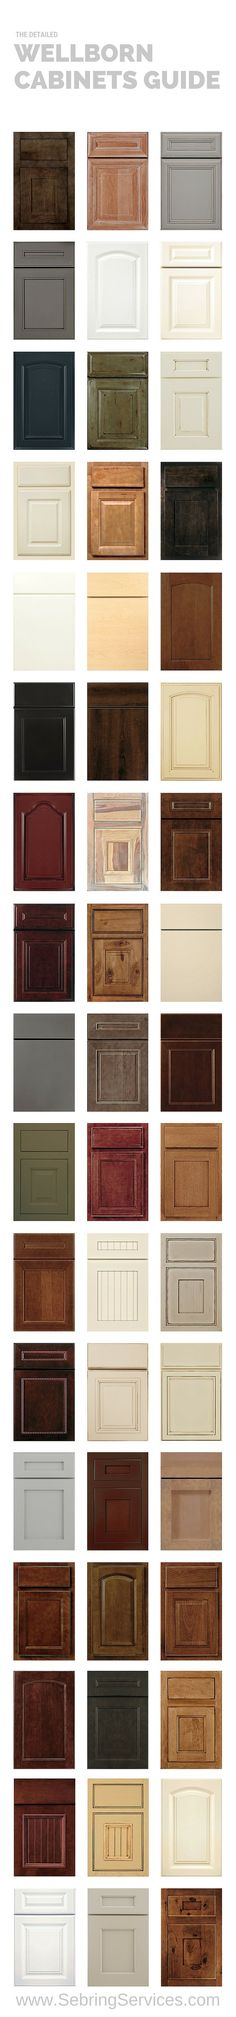 In 1961 at a small cabinet shop in Ashland, Alabama, a small group of skilled experts began to construct cabinets for supply to the local markets.  It was the Wellborn Cabinet Company. More than 50 years later a lot has changed but the commitment to quality at Wellborn Cabinet has remained the same. The family owned and operated company has grown to fill a 1.8 million square foot facility, enabling it to produce a wide range of quality cabinetry options for homeowners.